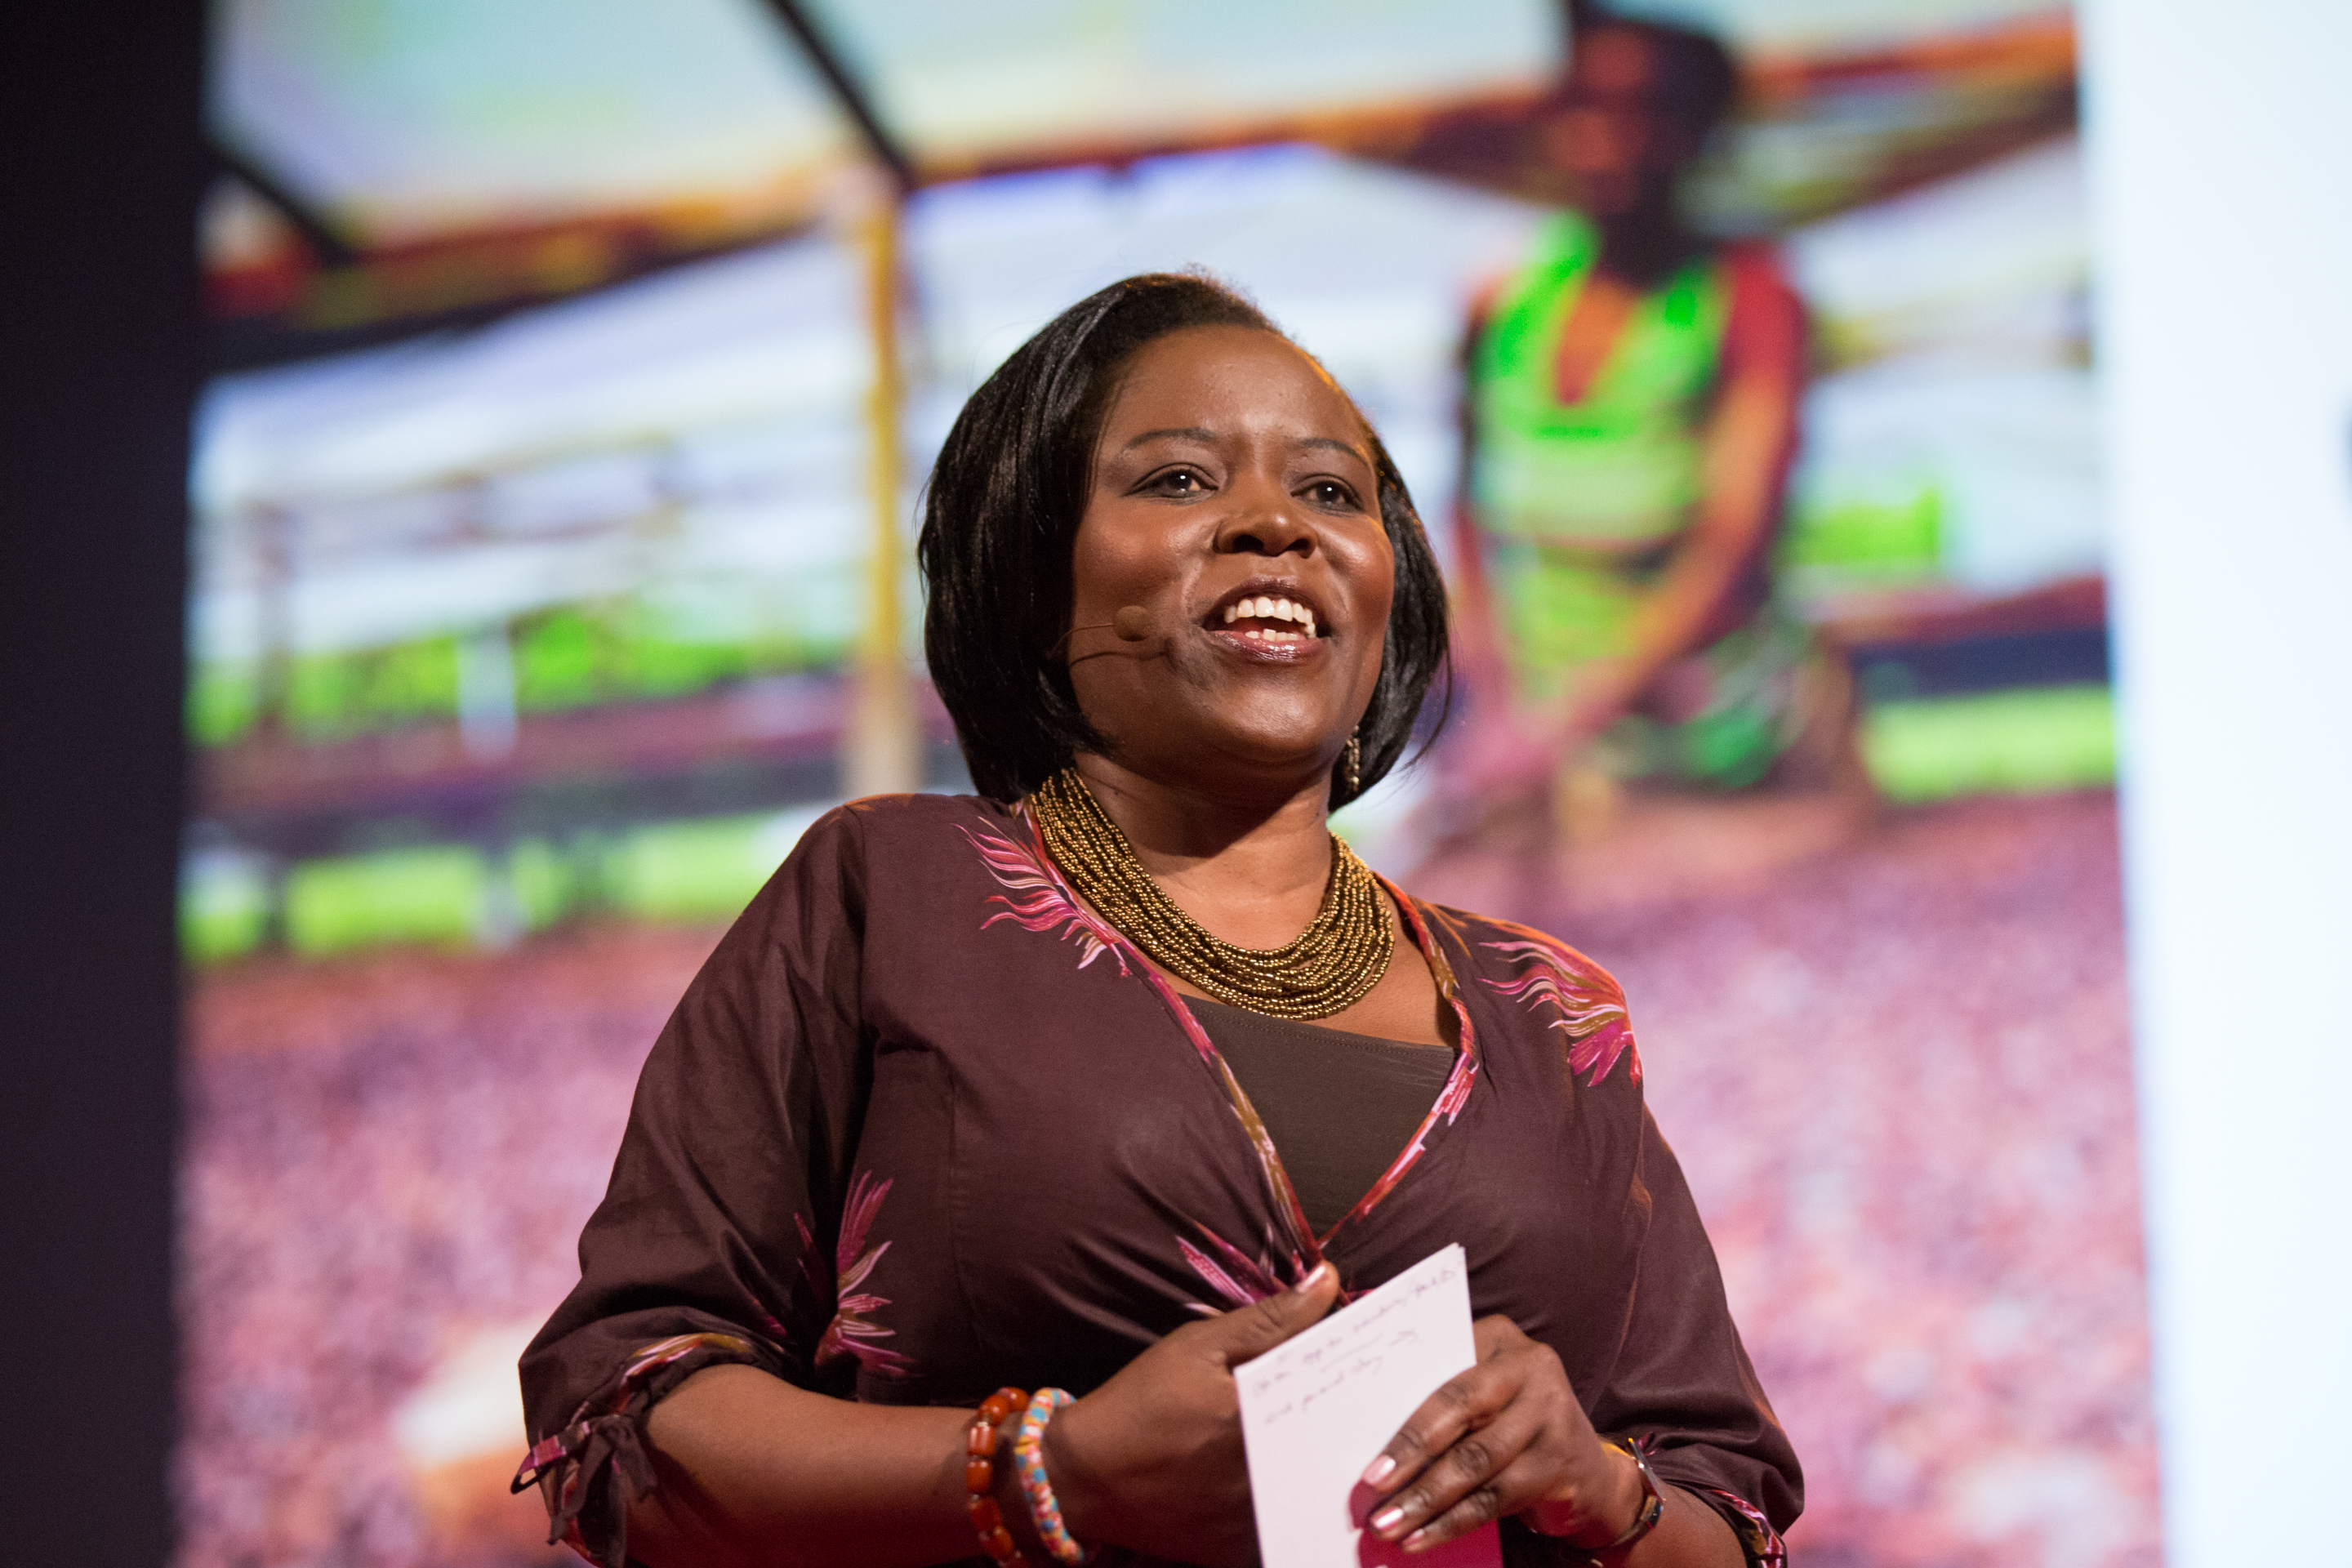 Sipho Moyo speaks at TEDGlobal 2014. Photo: James Duncan Davidson/TED